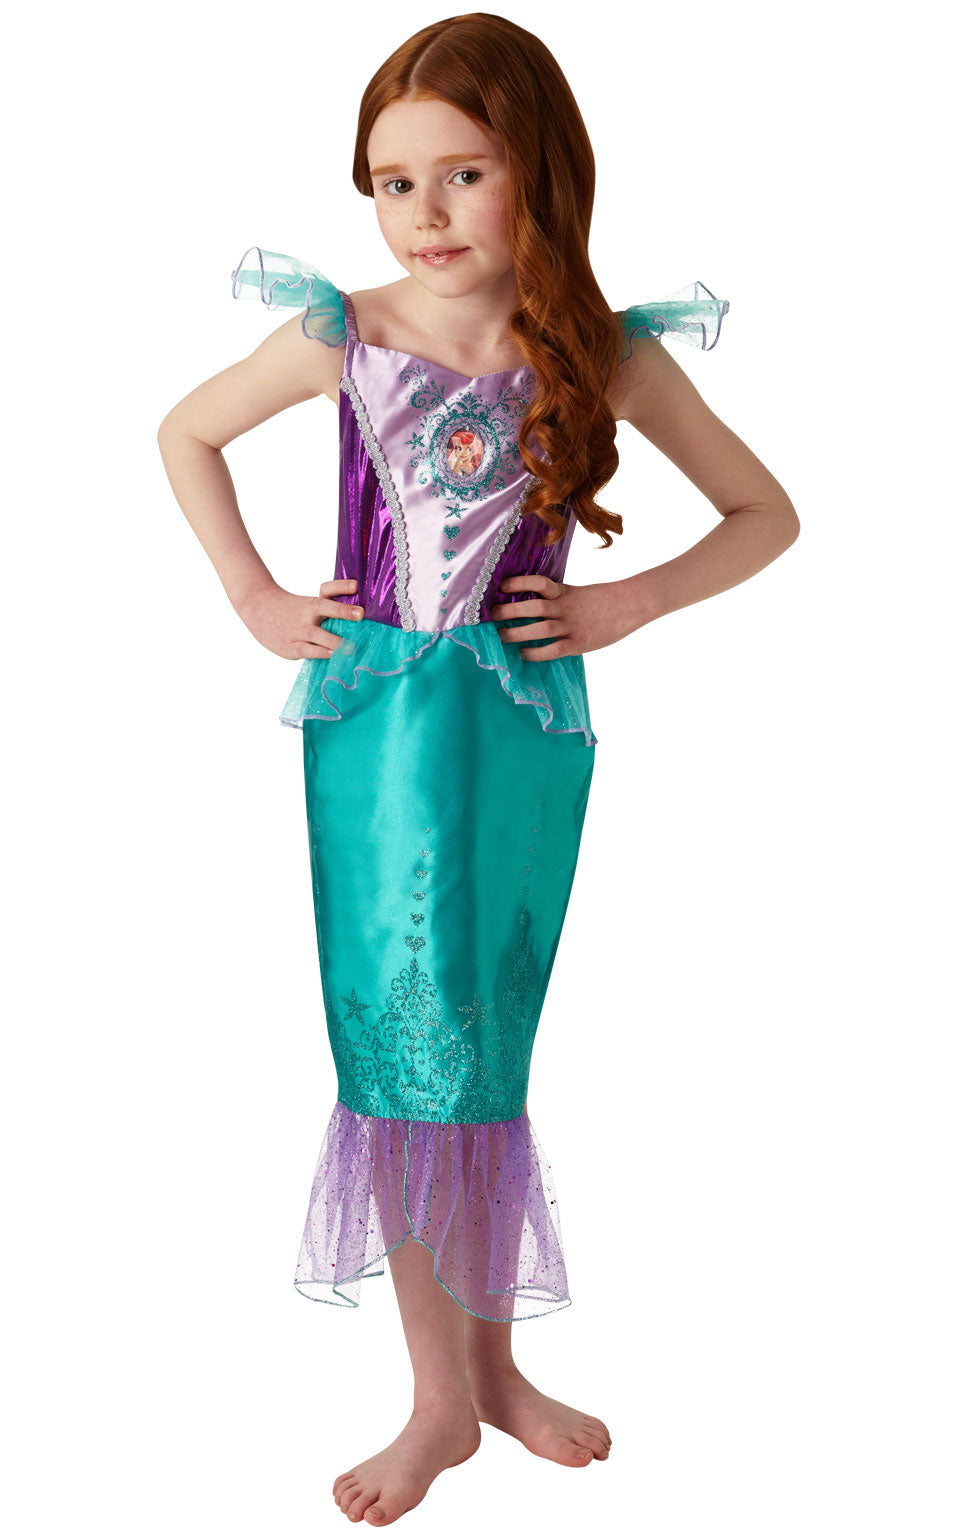 f3e4cf4650072 This Ariel from The Little Mermaid Outfit features a dress with organza  frilled sleeves and a